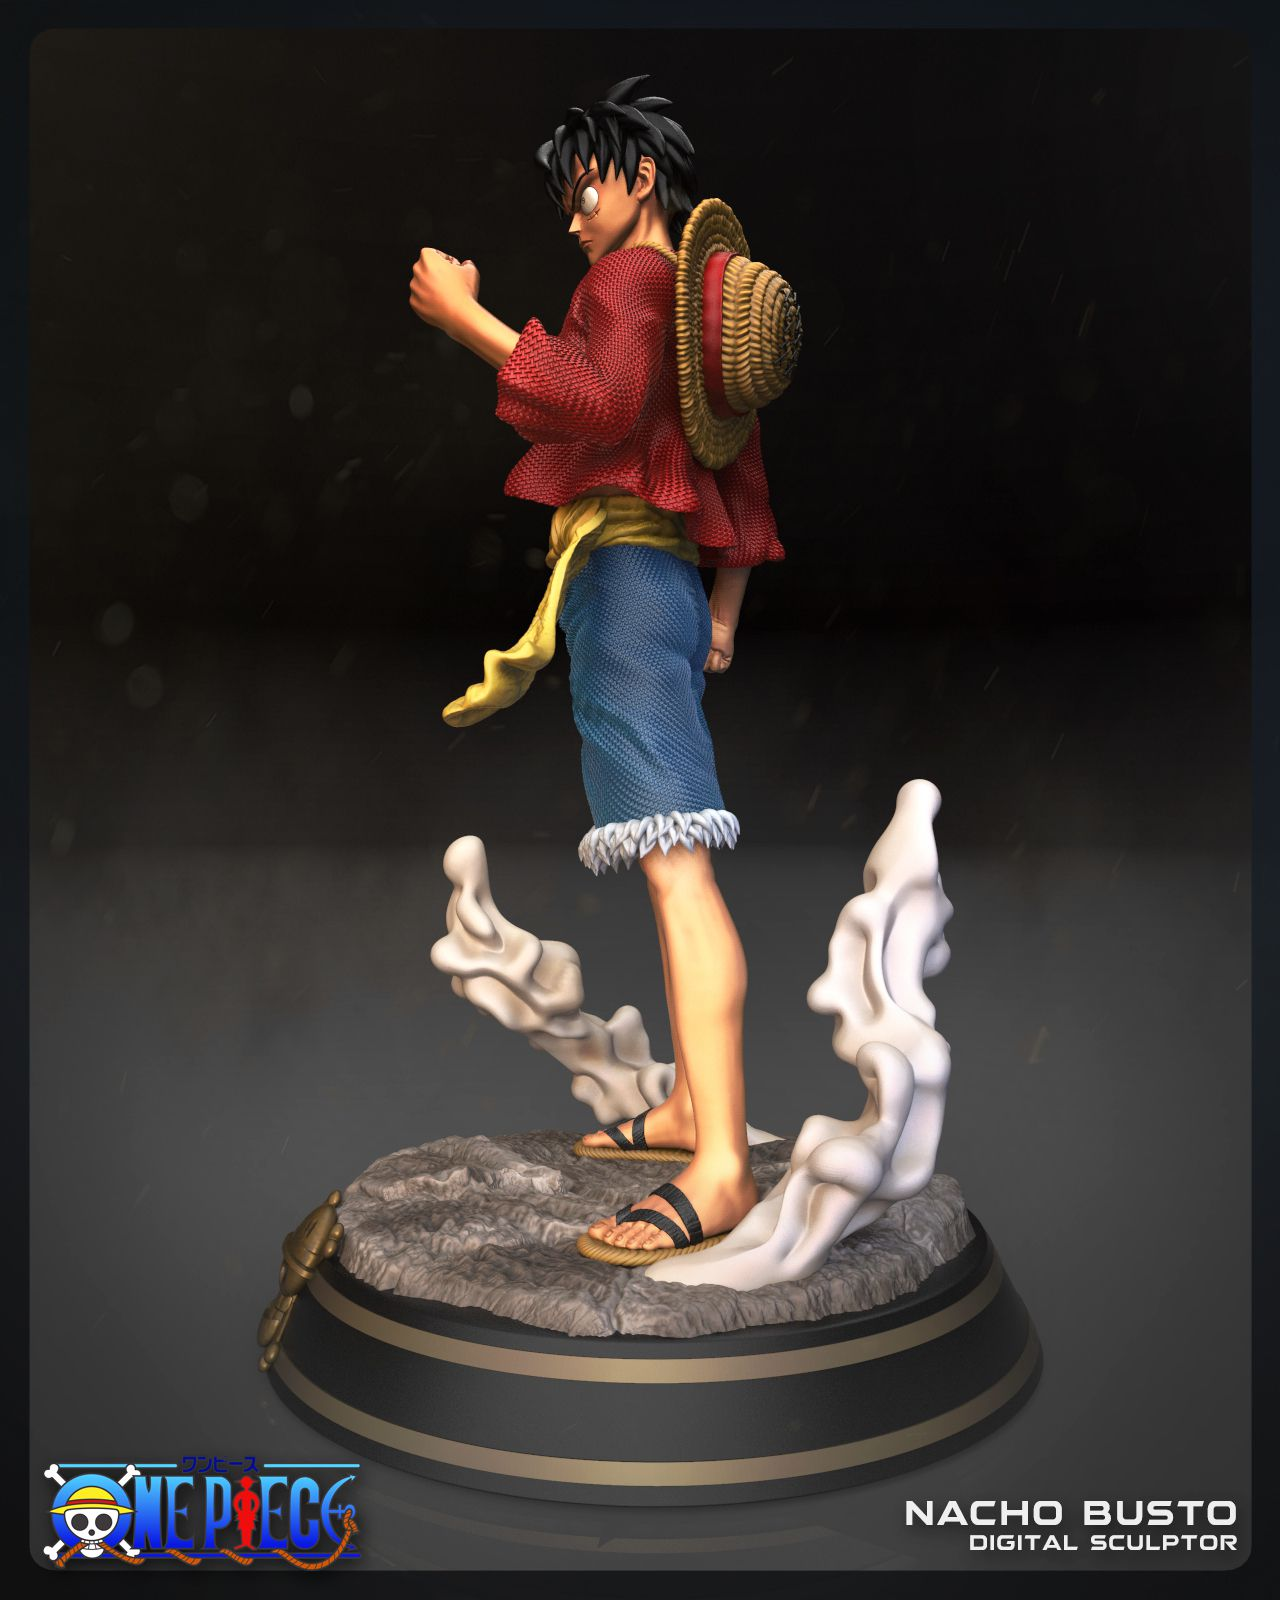 03luffy vertical03.jpg Download STL file Luffy - One Piece for 3d print model • 3D printing design, Ignacioabusto